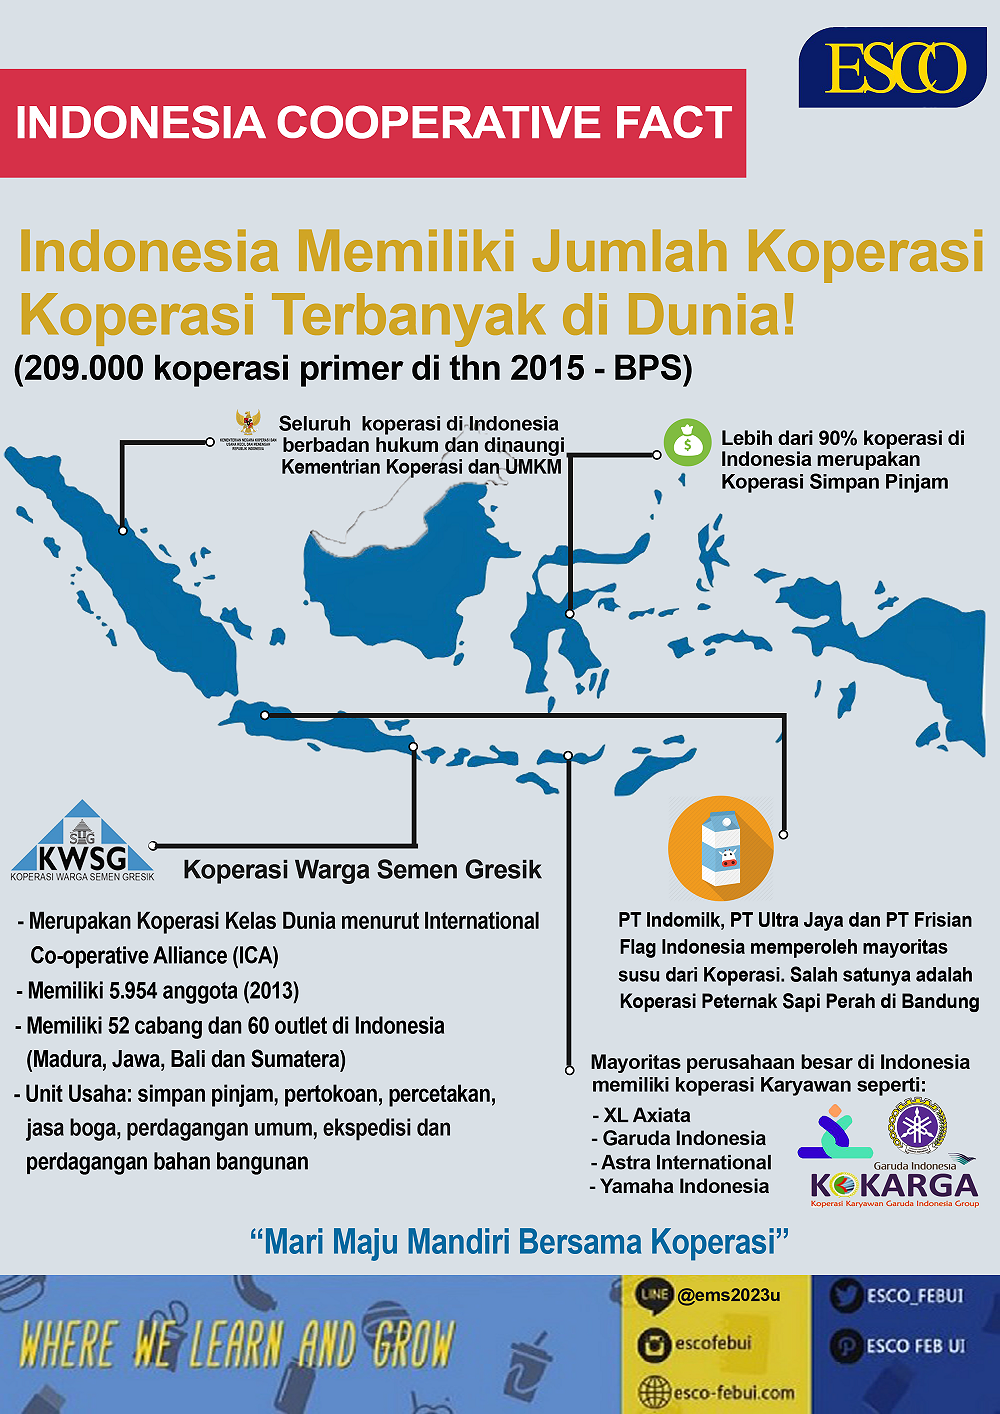 Indonesia Cooperative Fact